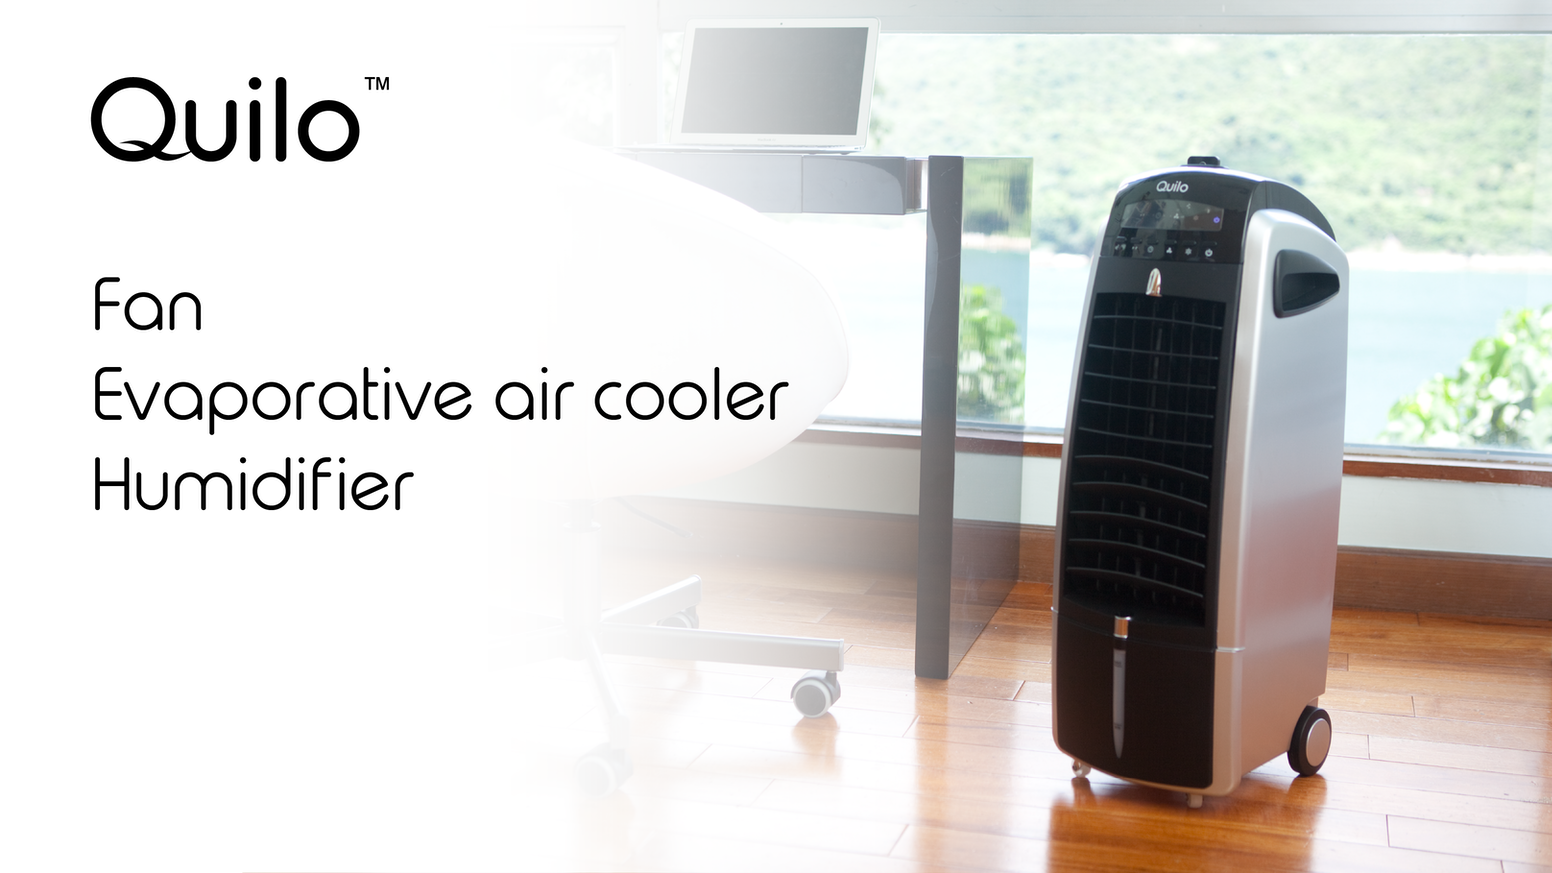 Quilo Fan with Evaporative Air Cooler and Humidifier by Quilo Home